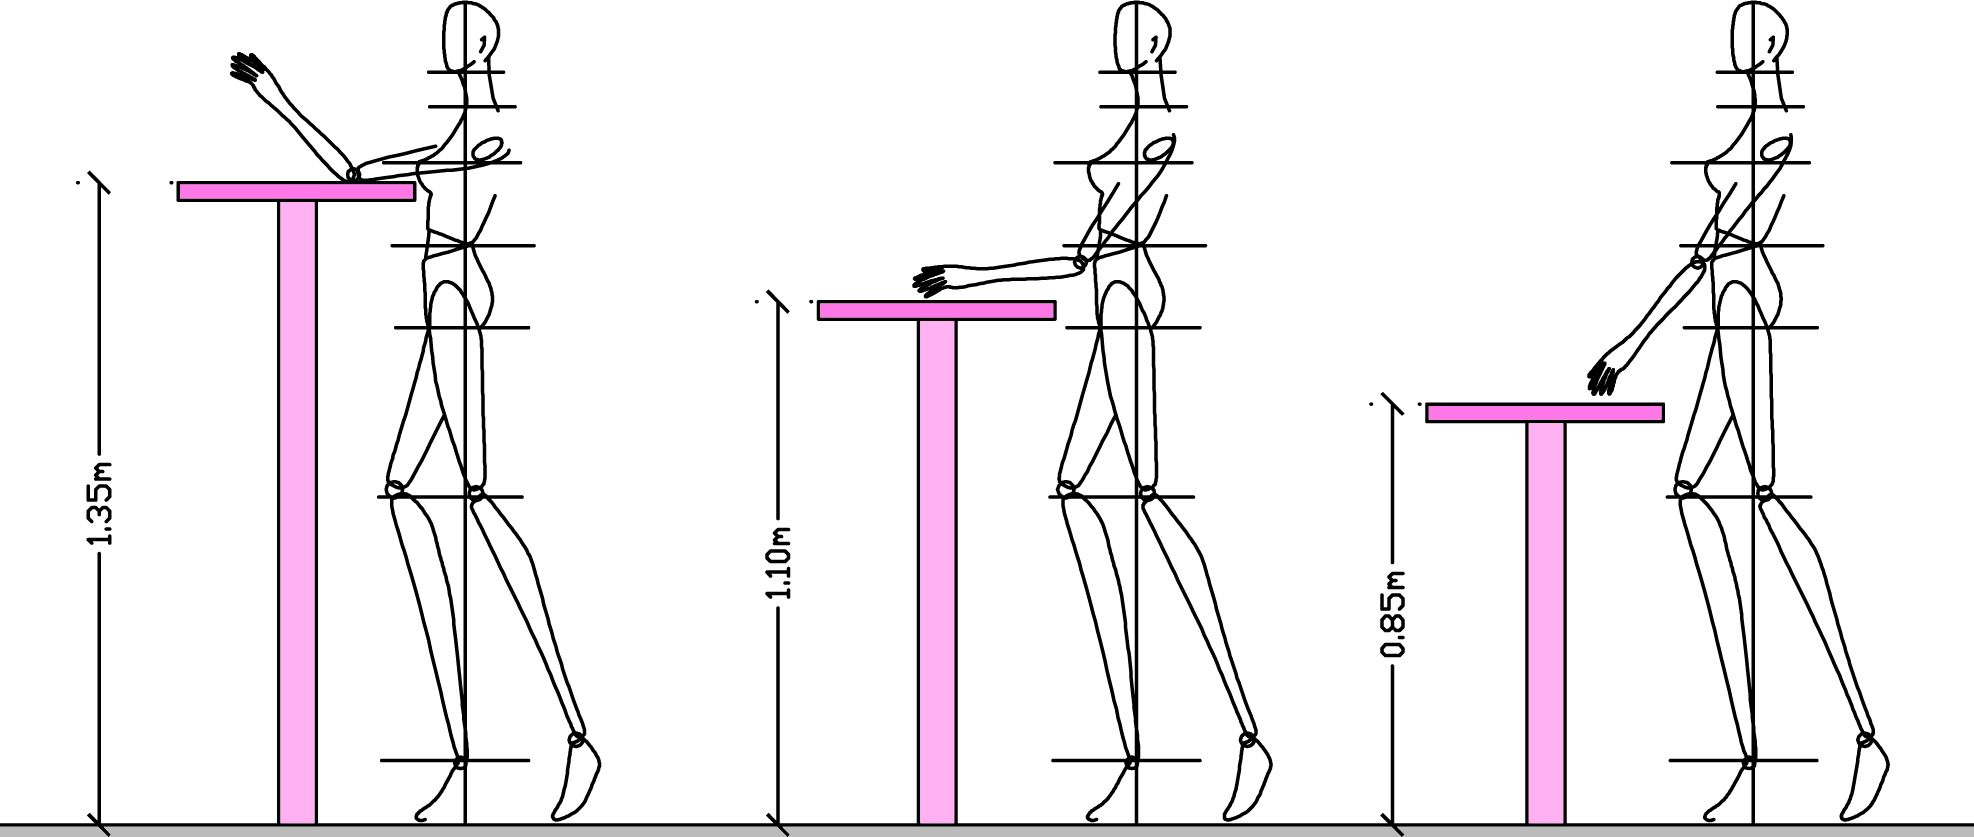 Dimension Table Bar Body Measurements Ergonomics For Table And Chair